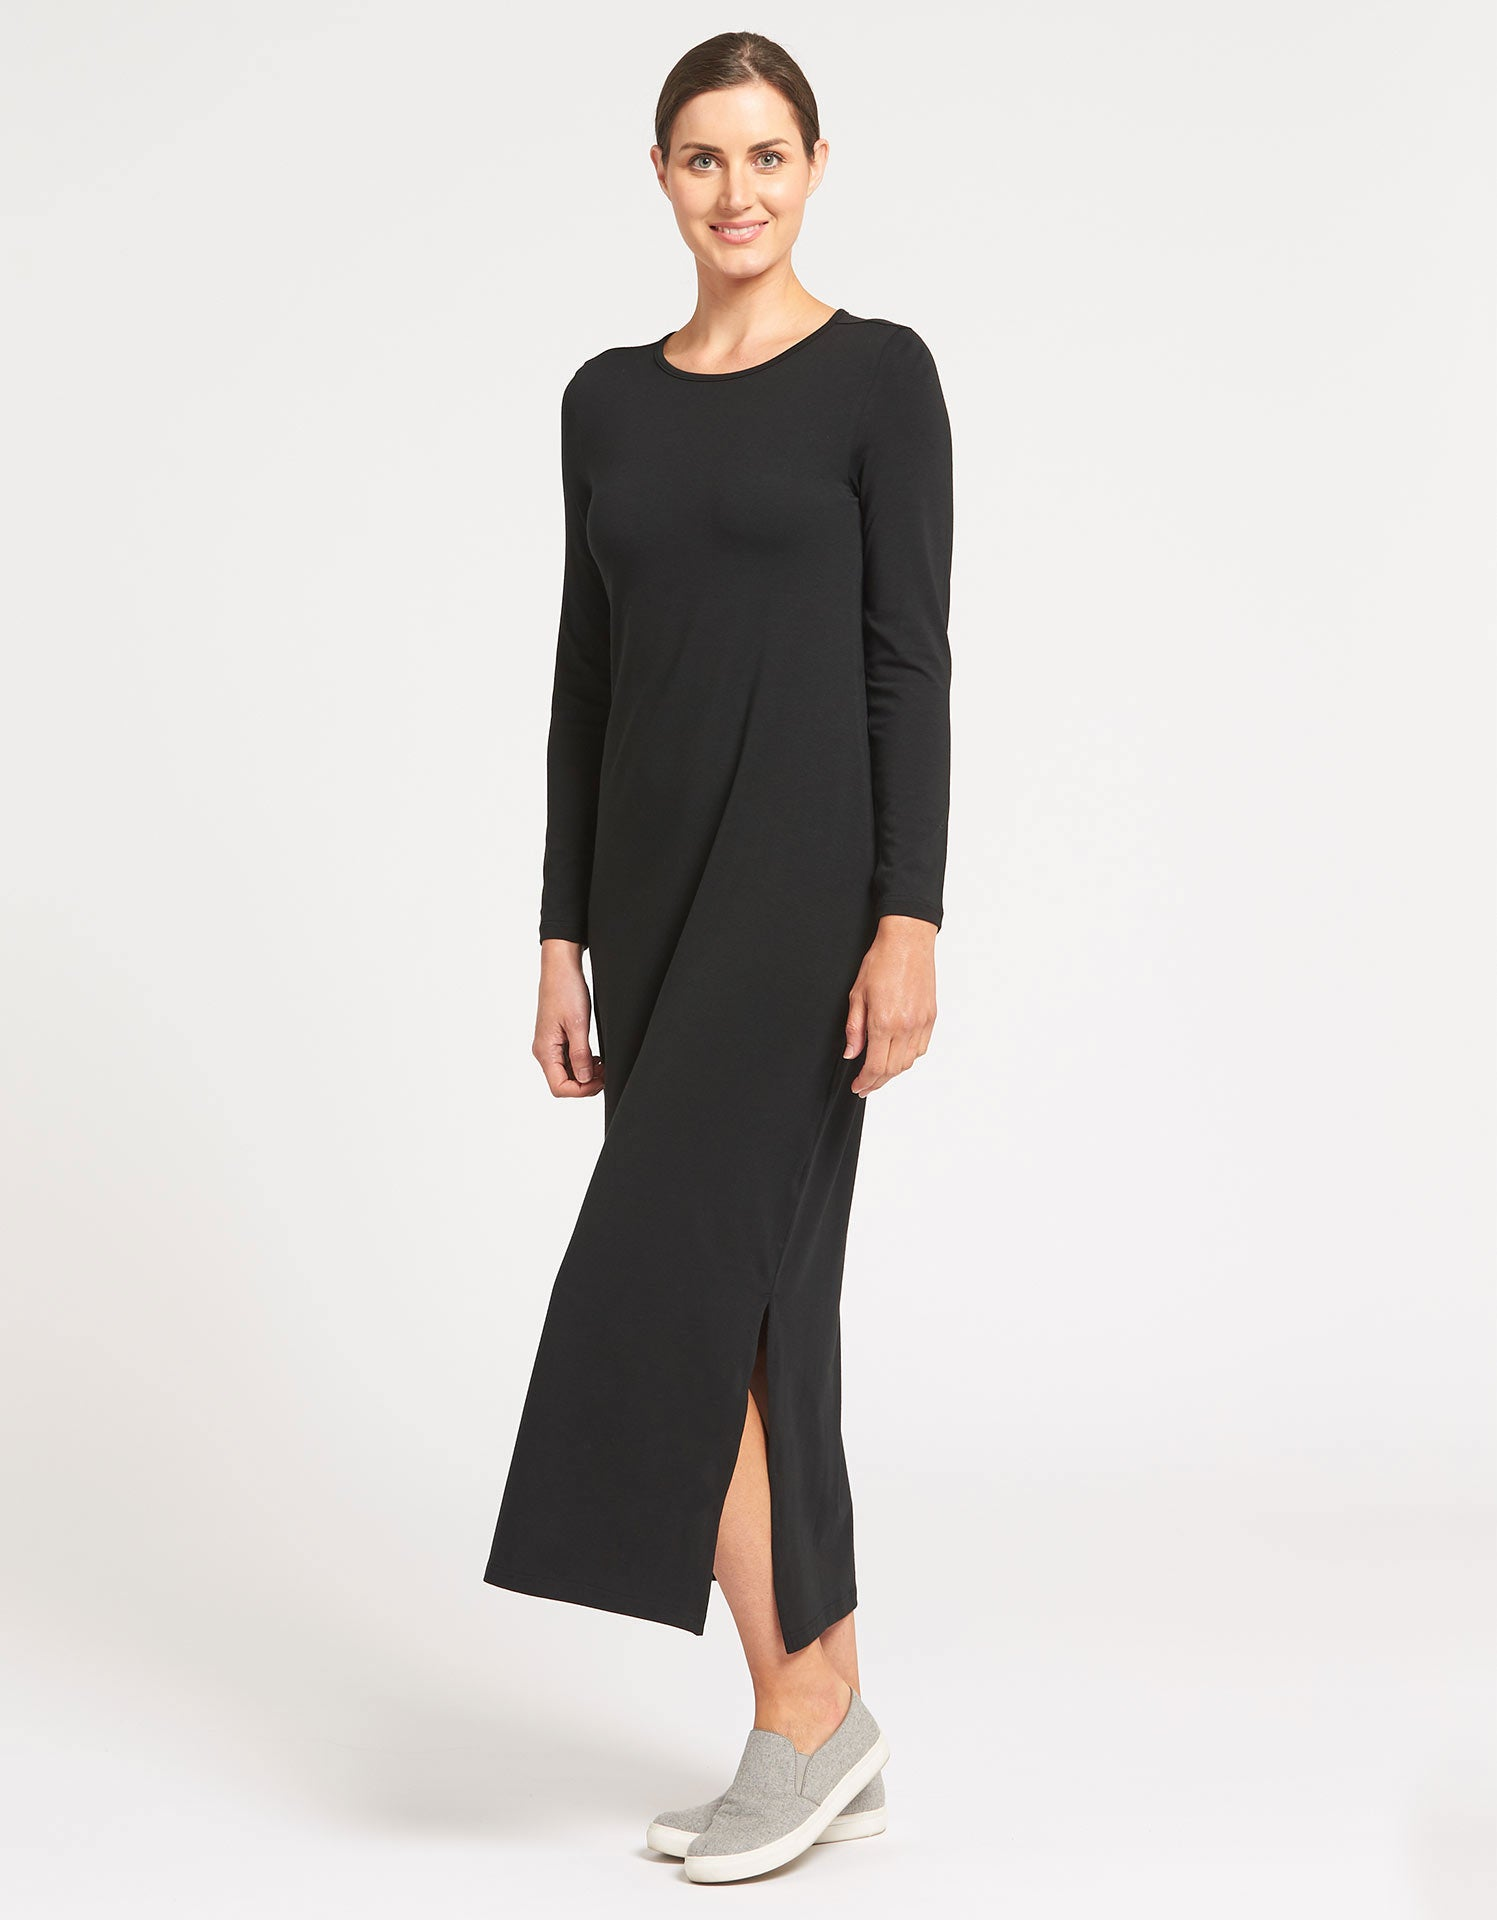 Long Sleeve Maxi Dress UPF 50+ Sensitive Collection